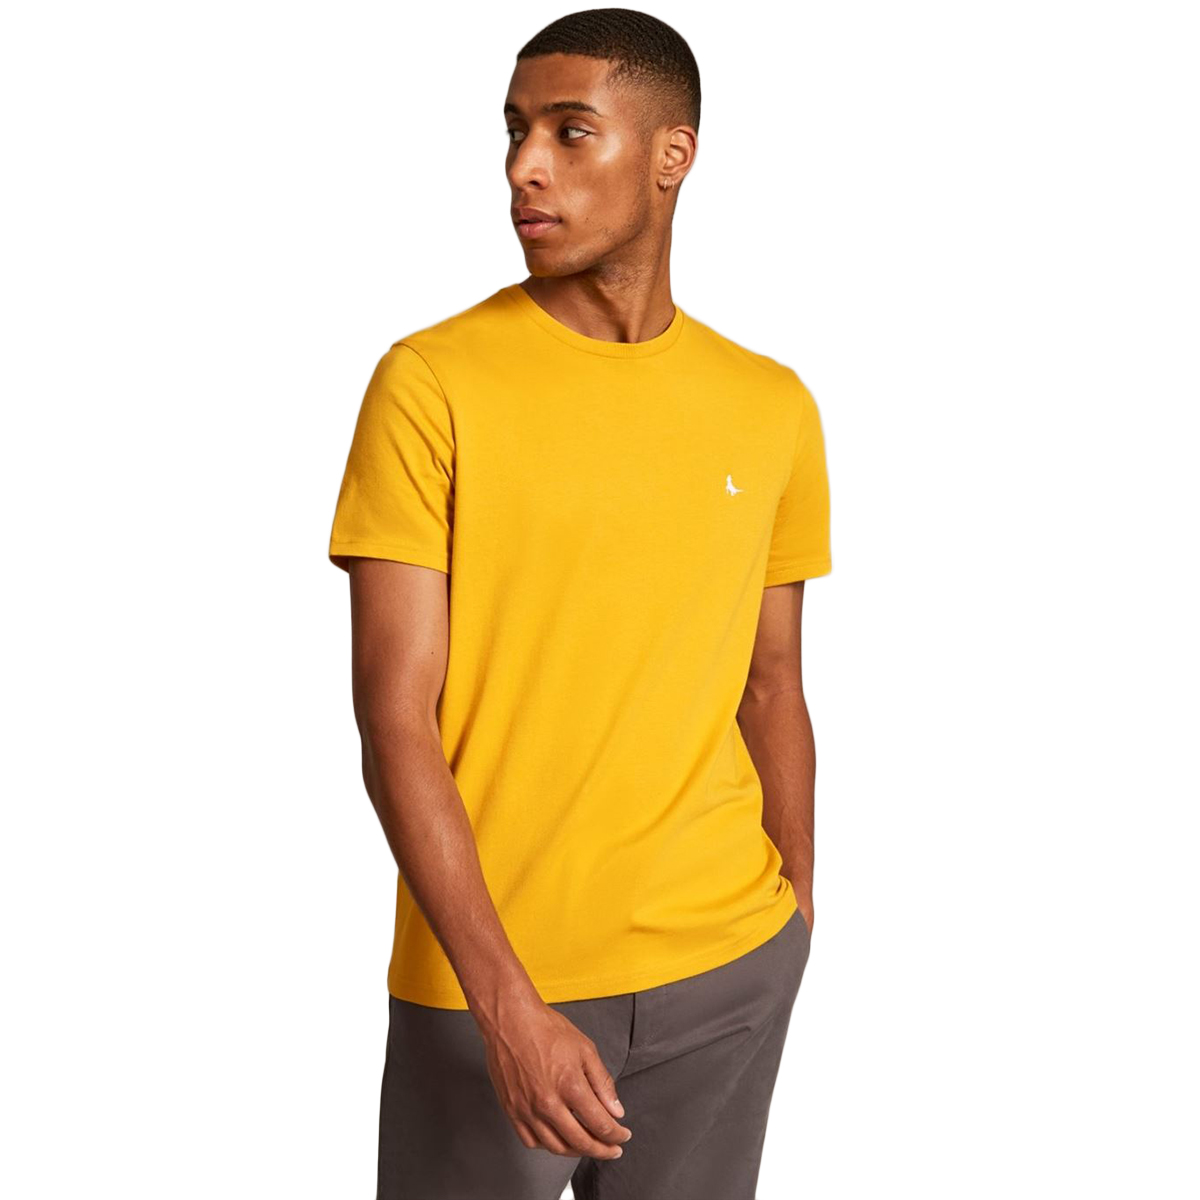 Jack Wills Men's Sandleford Short-Sleeve Tee - Yellow, M